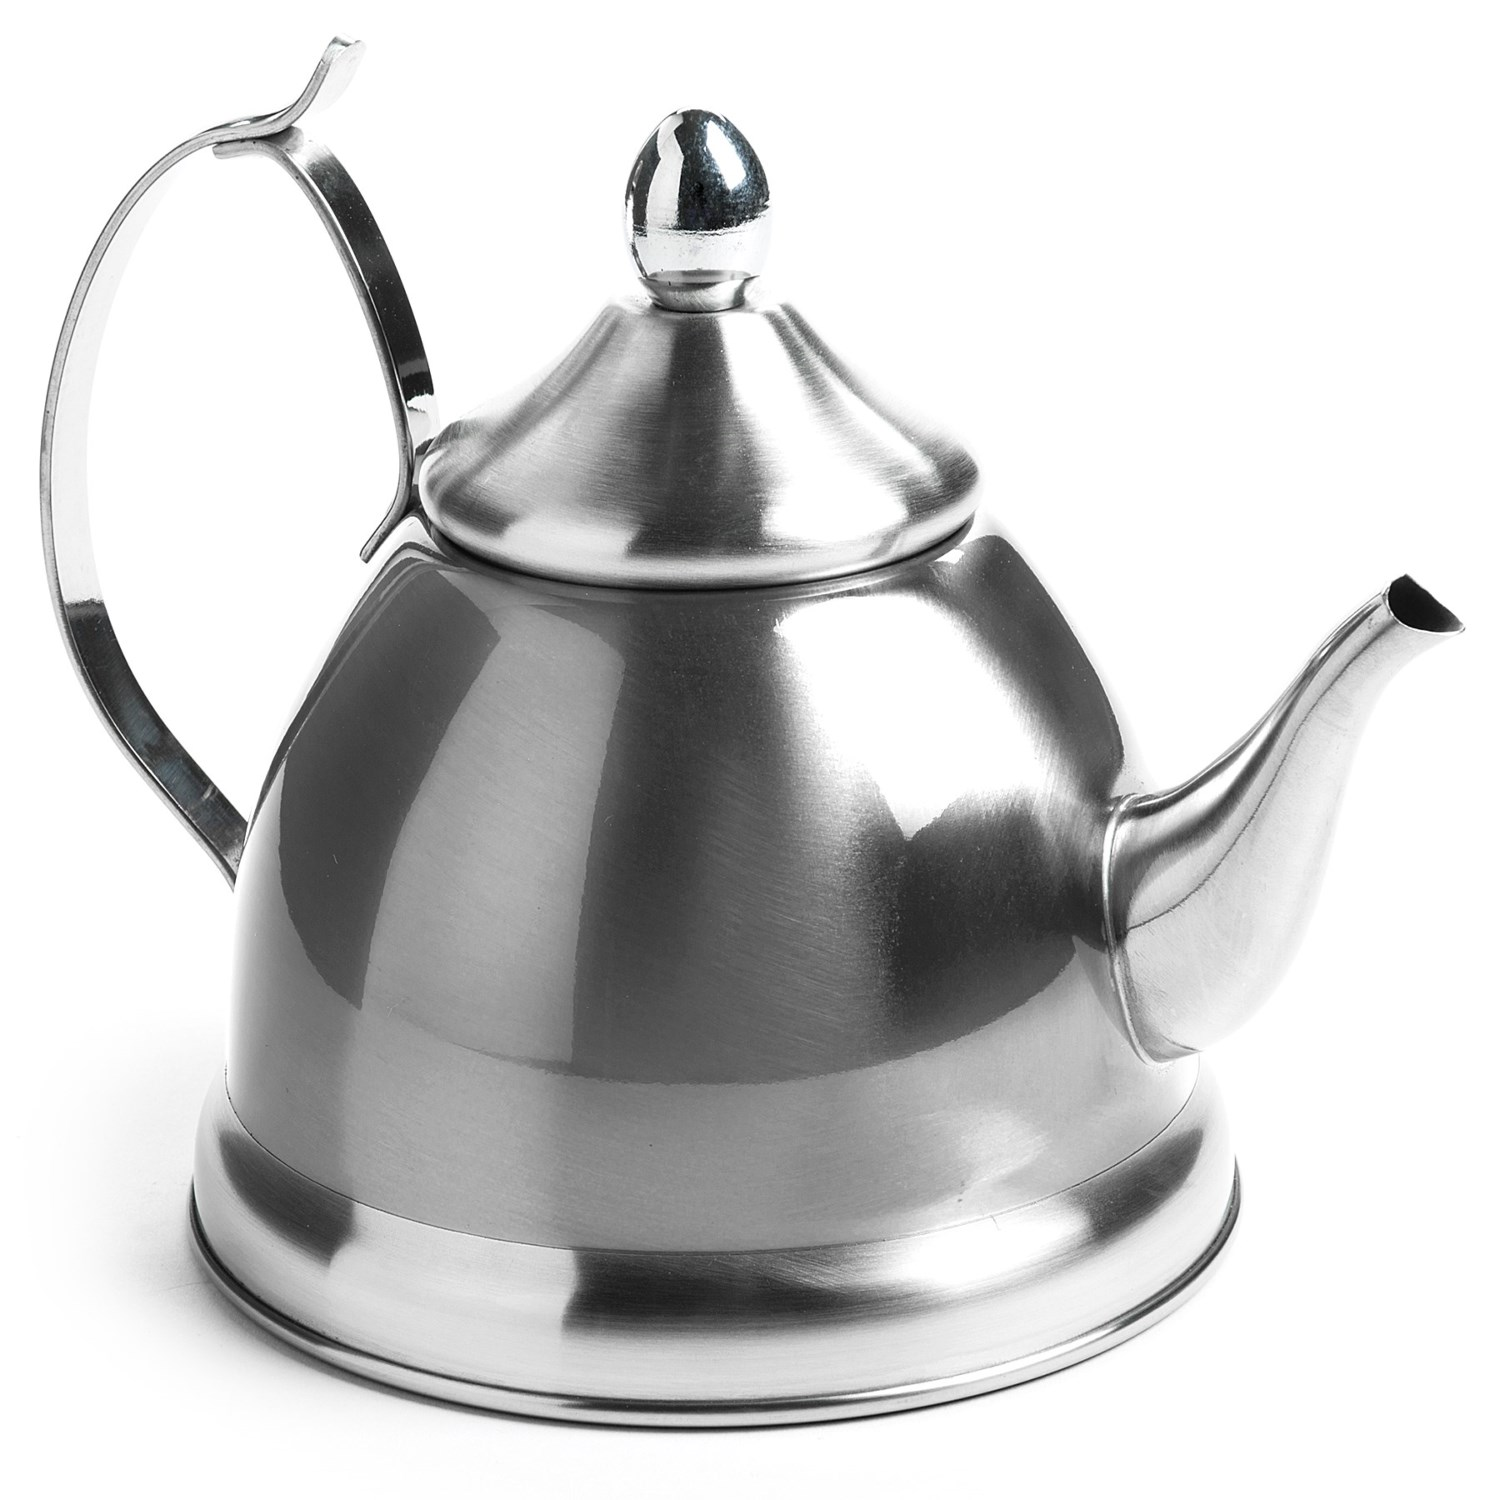 Stainless Steel Tea Kettle ~ Creative home nobili tea kettle with infuser qt